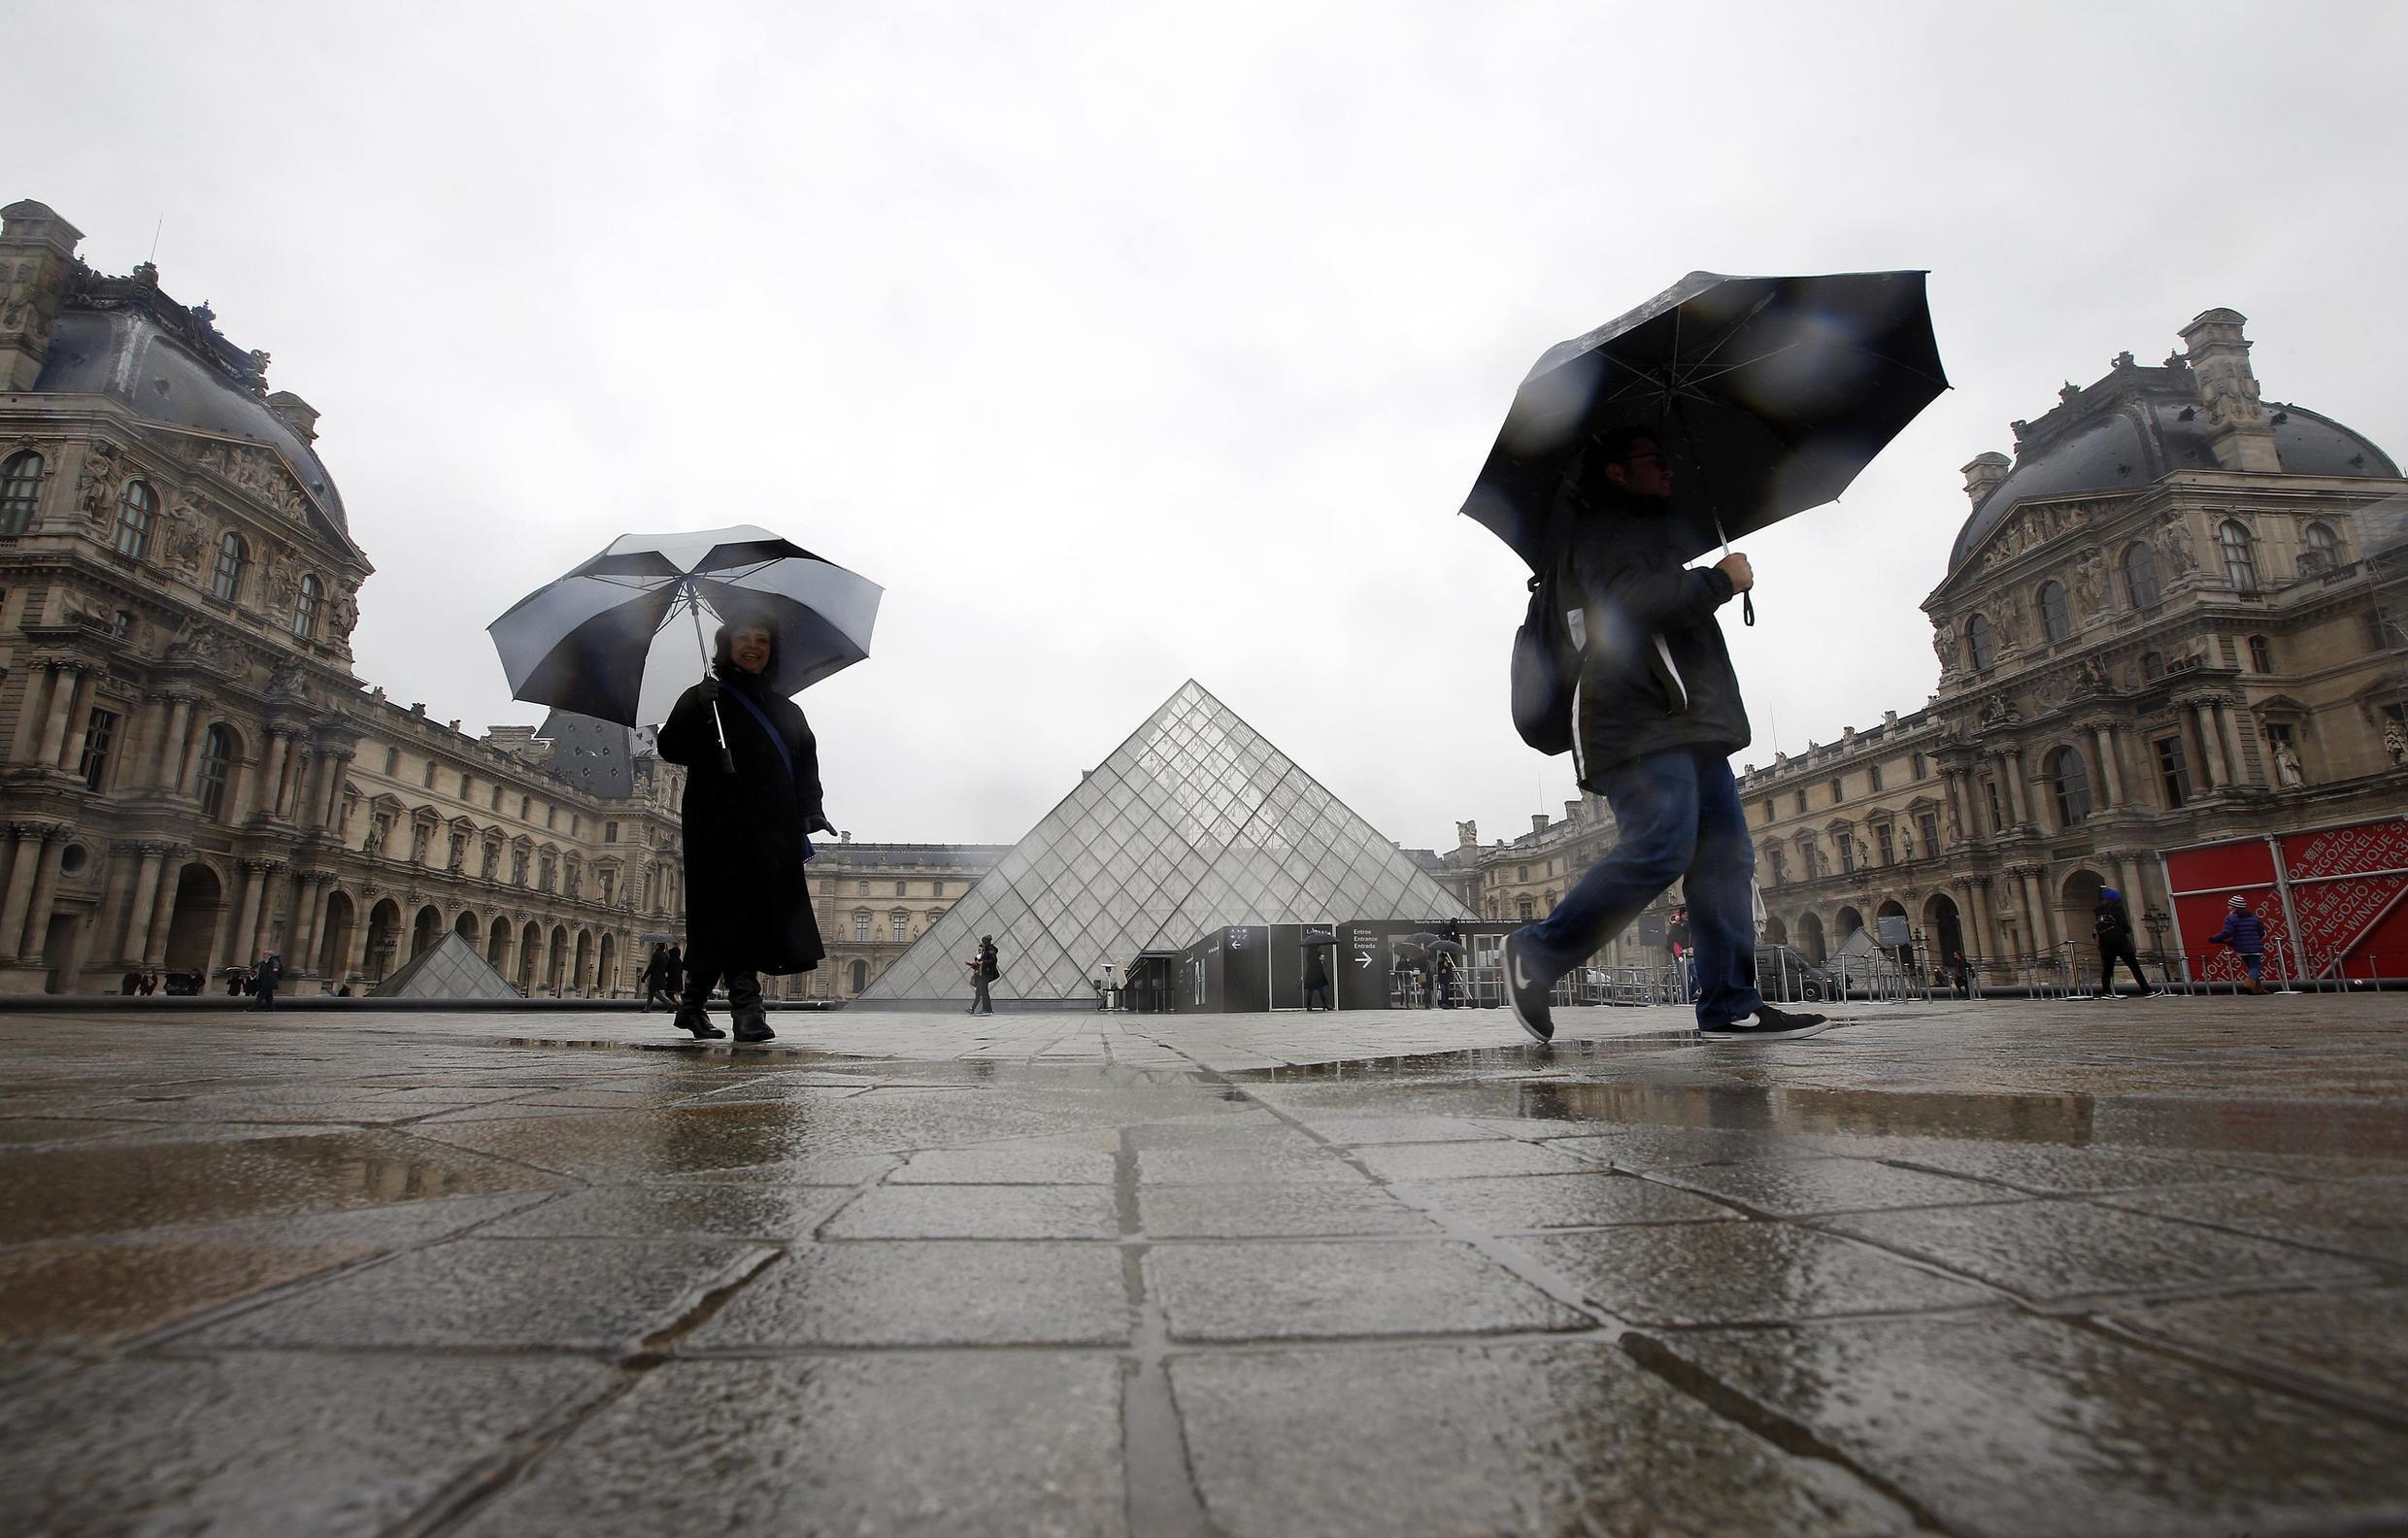 The Louvre museum in Paris deserted after the 13 November attacks